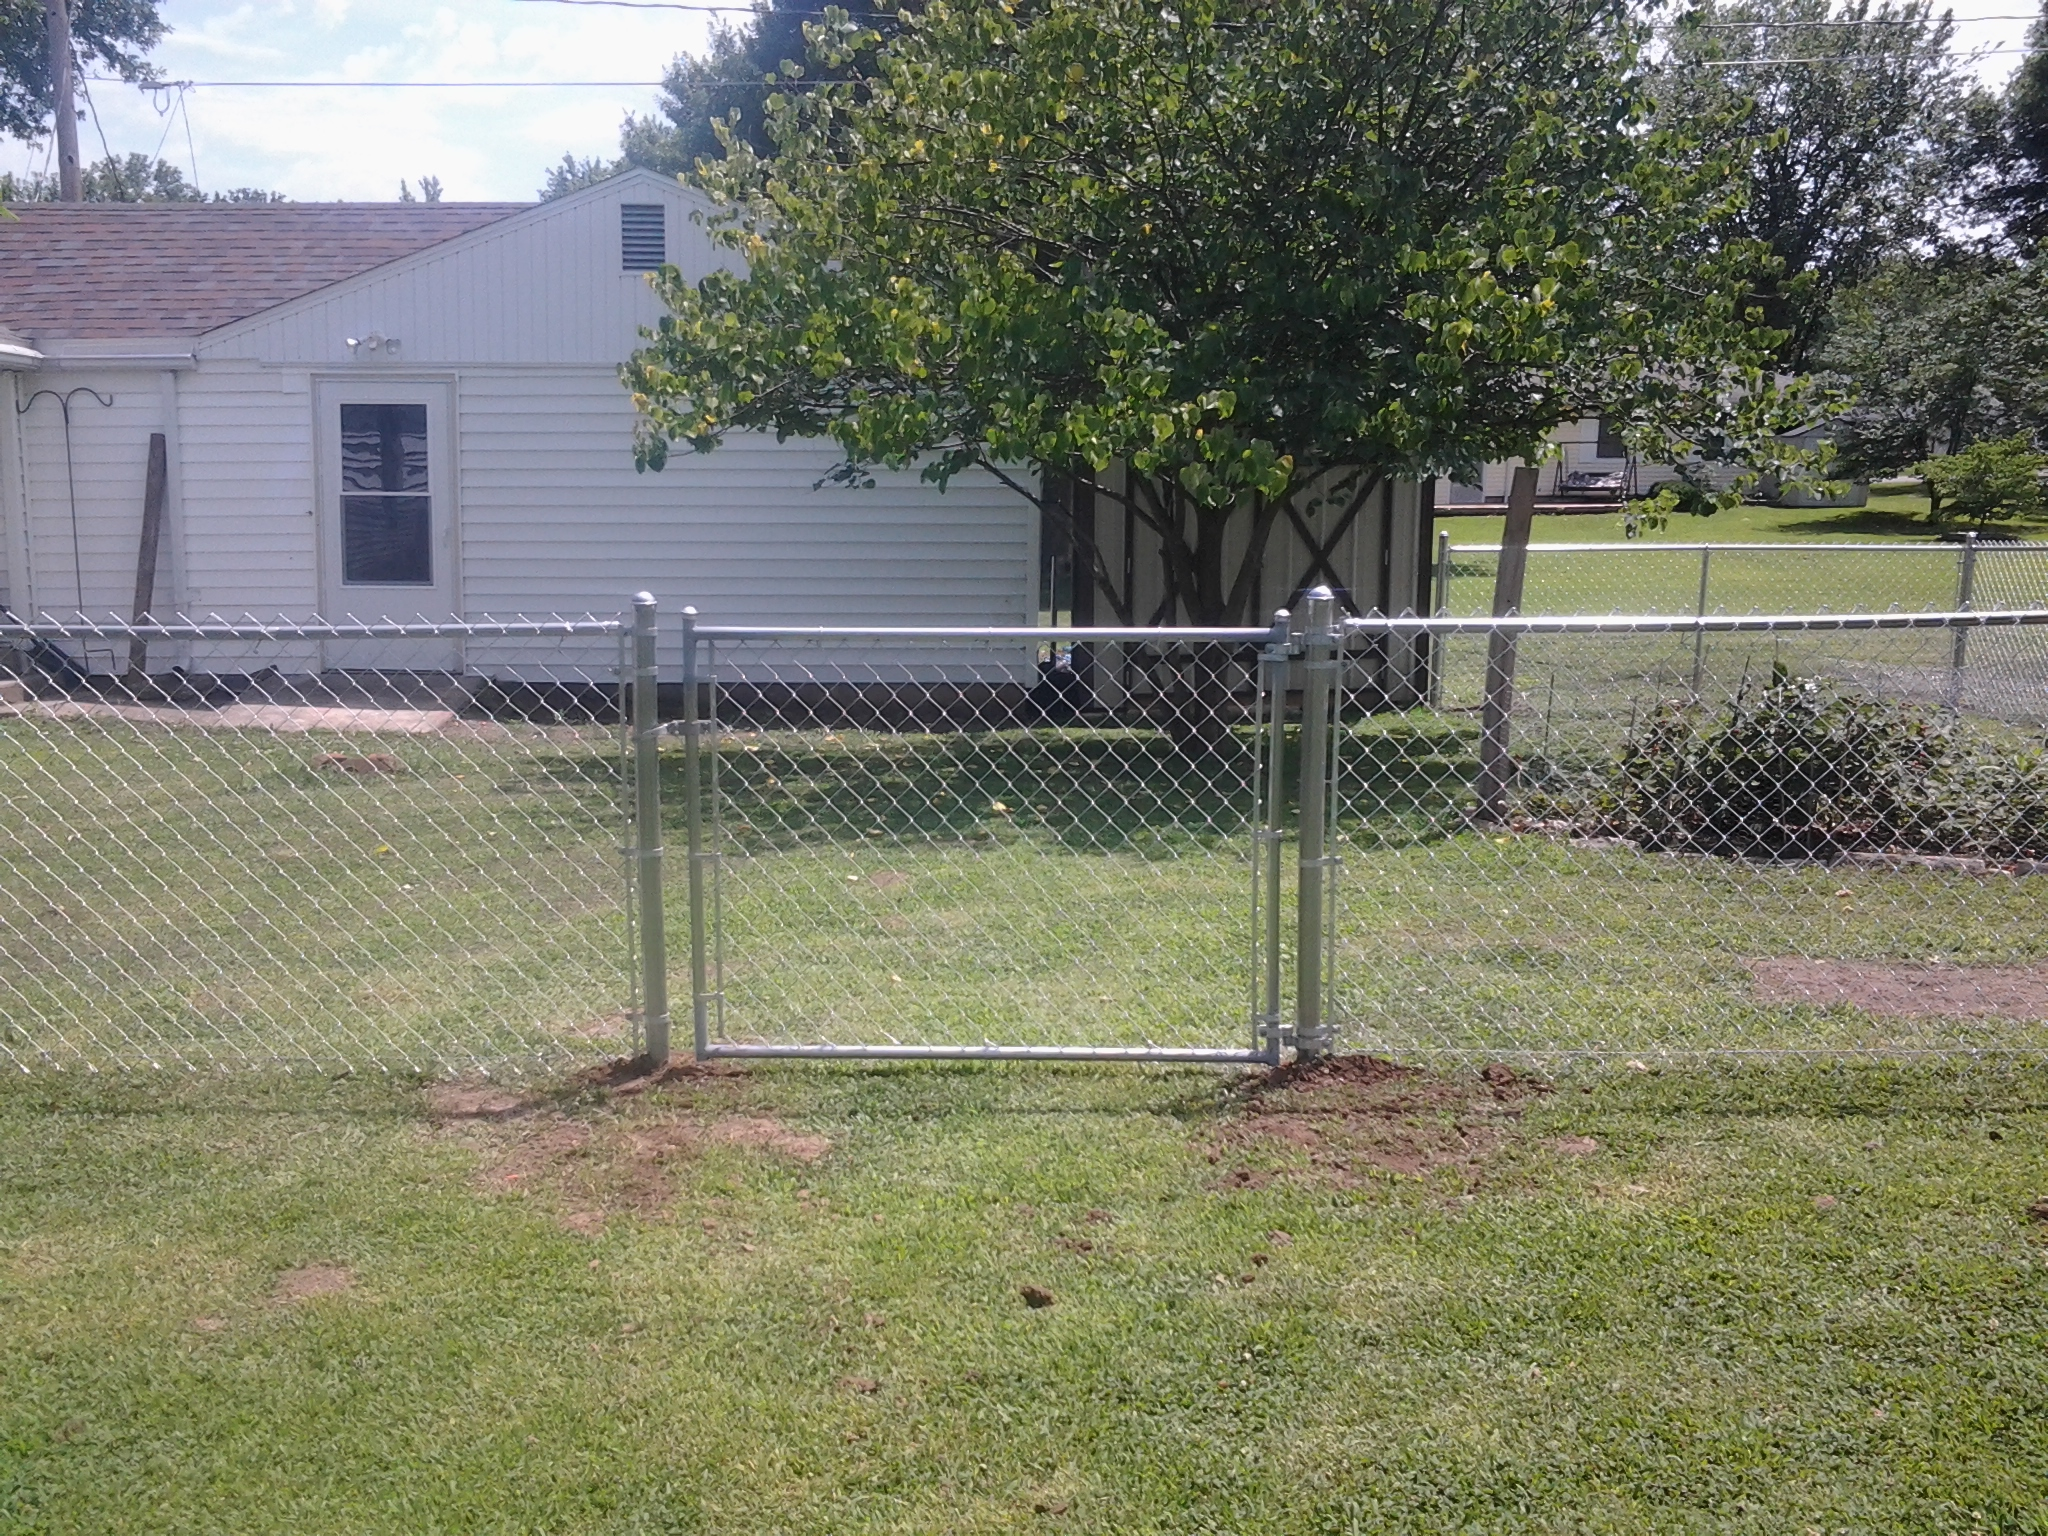 Residential Chainlink 4